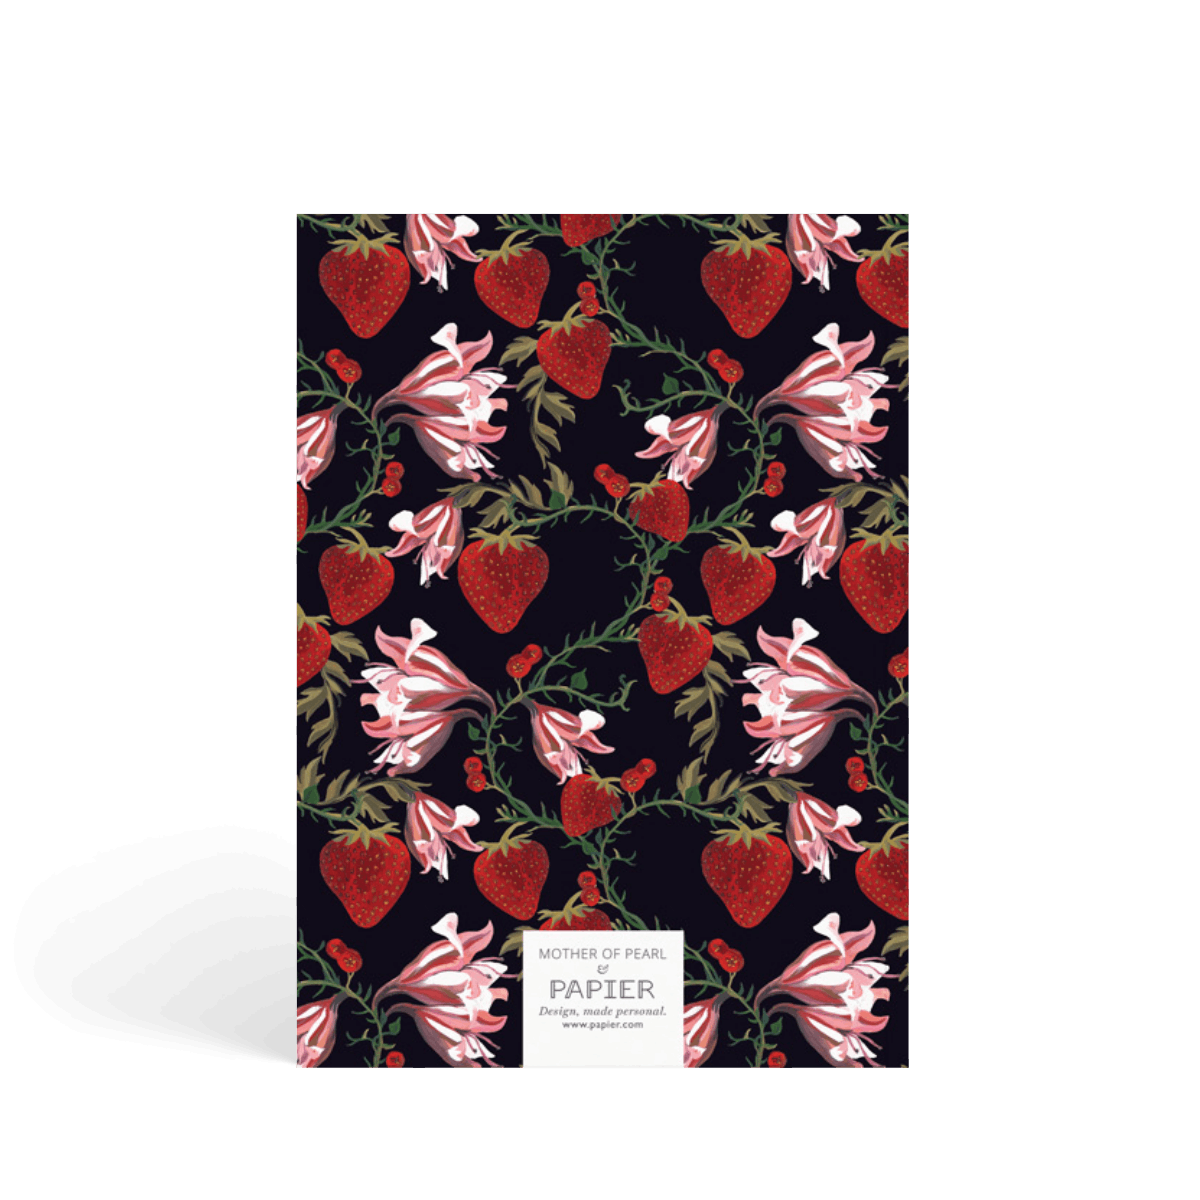 Https%3a%2f%2fwww.papier.com%2fproduct image%2f55588%2f5%2fstrawberry floral 13350 back 1542299604.png?ixlib=rb 1.1